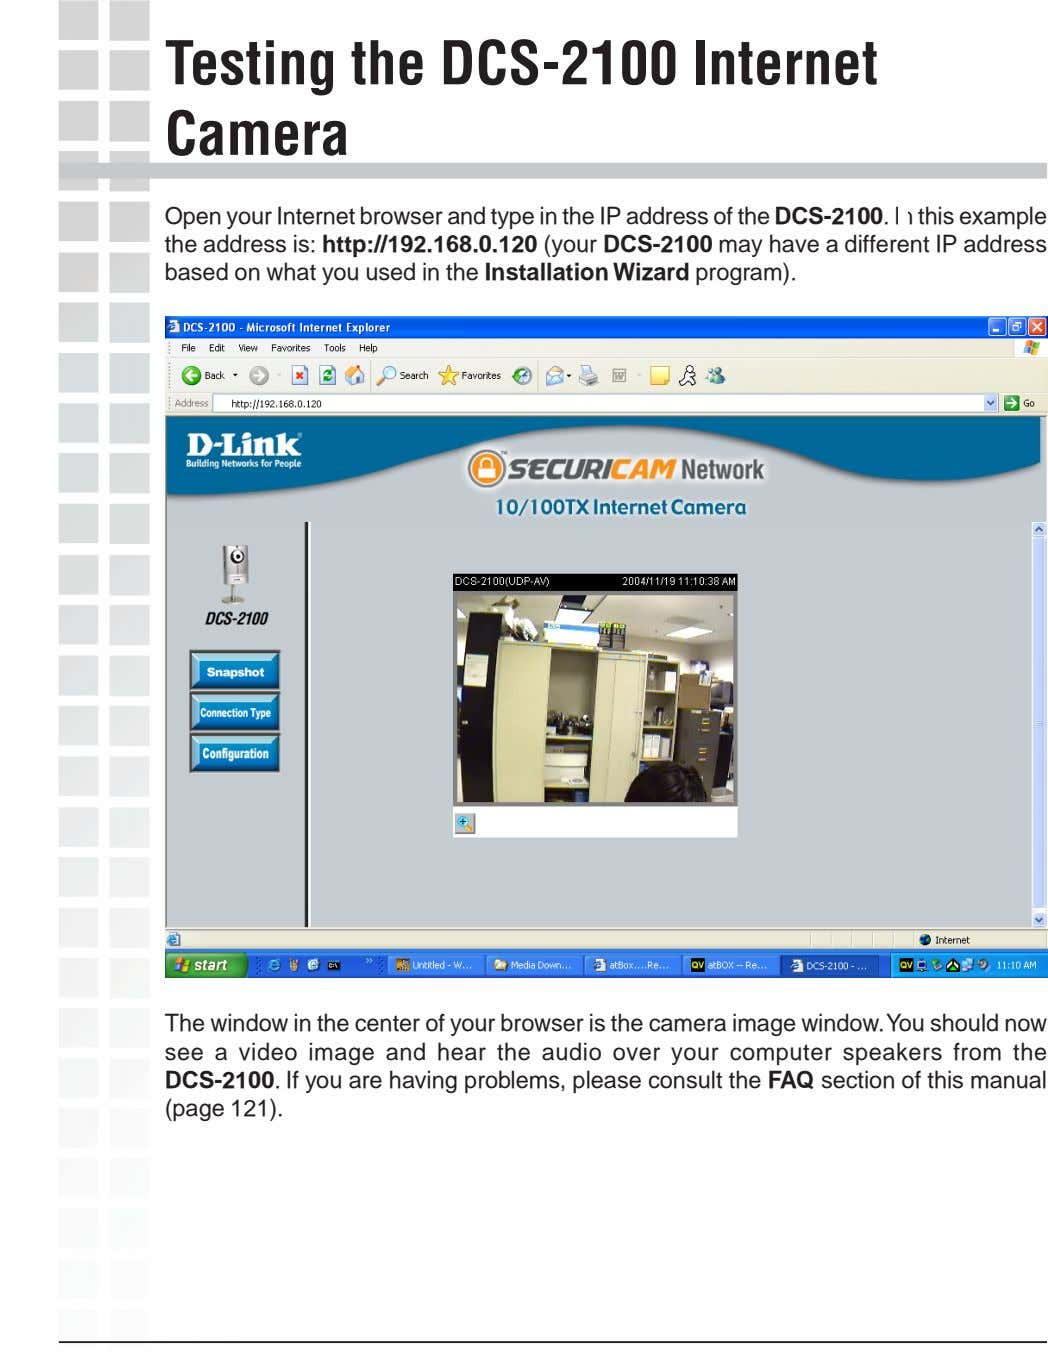 Testing the DCS-2100 Internet Camera Open your Internet browser and type in the IP address